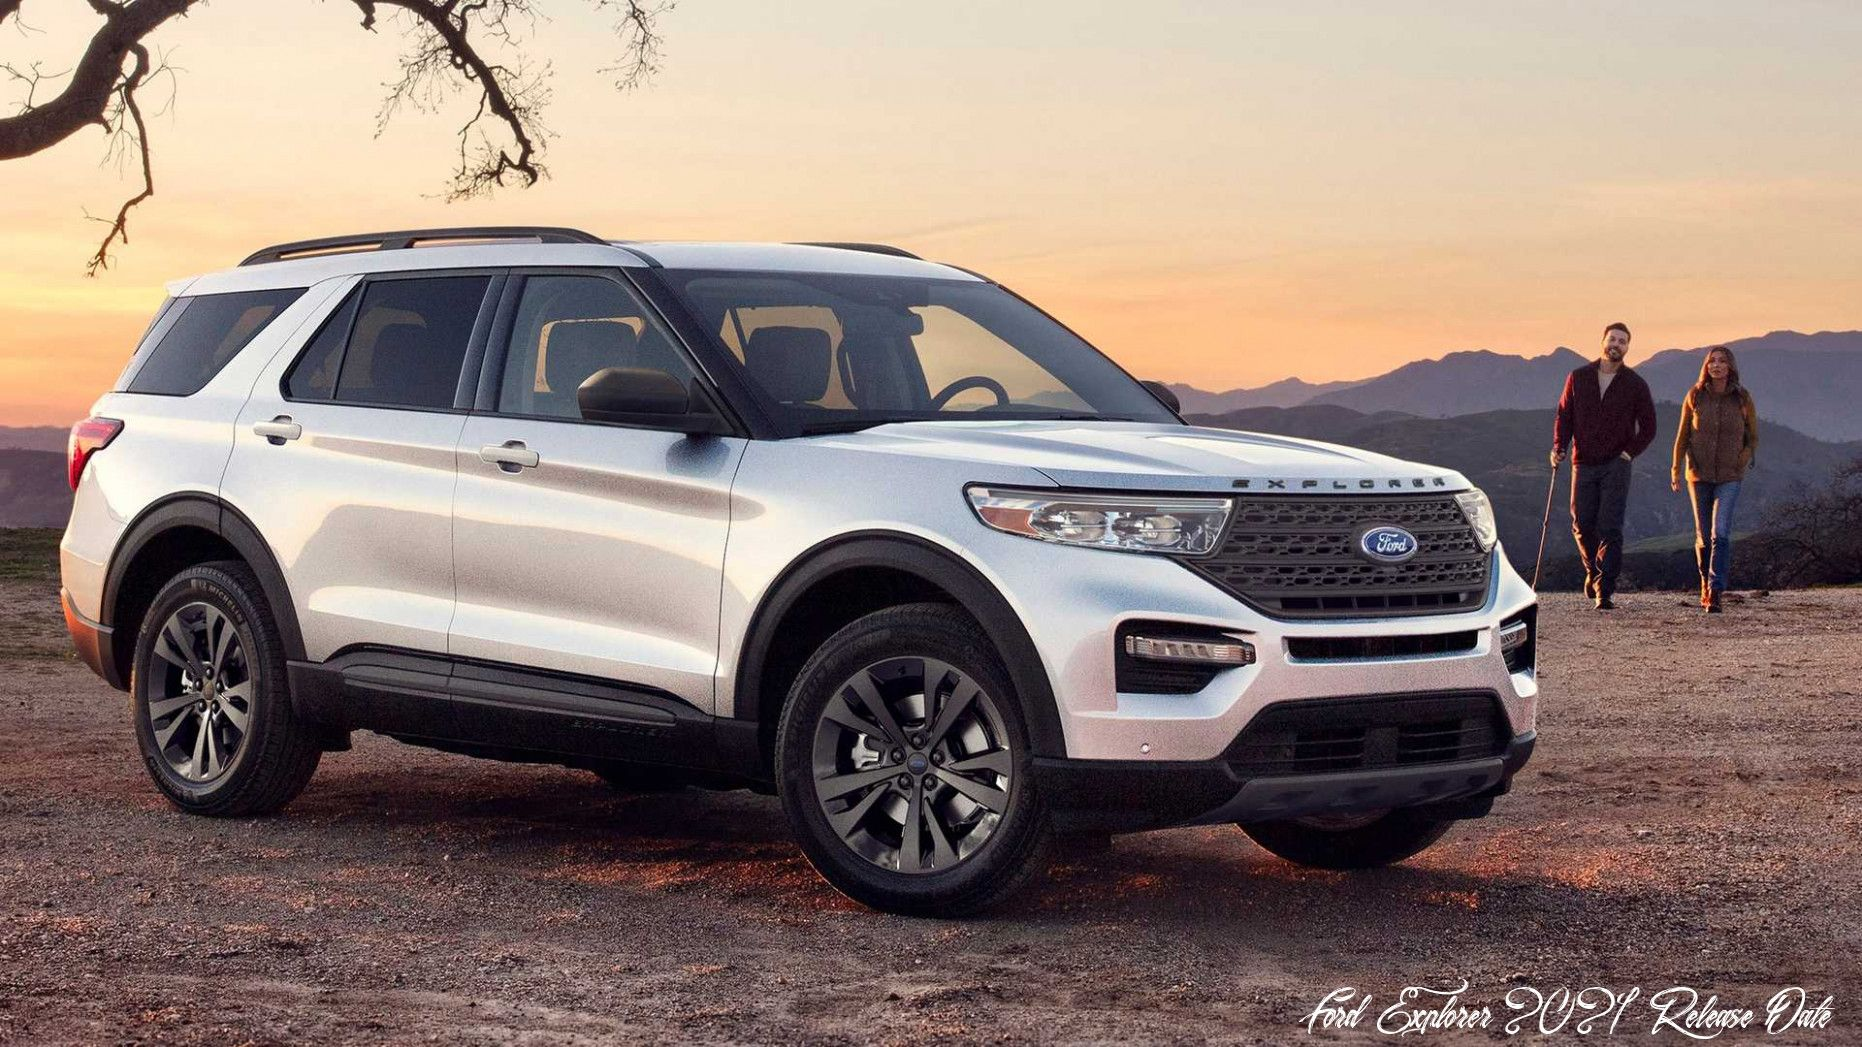 Ford Explorer 2021 Release Date Model In 2020 Ford Explorer Ford Explorer Xlt 2020 Ford Explorer